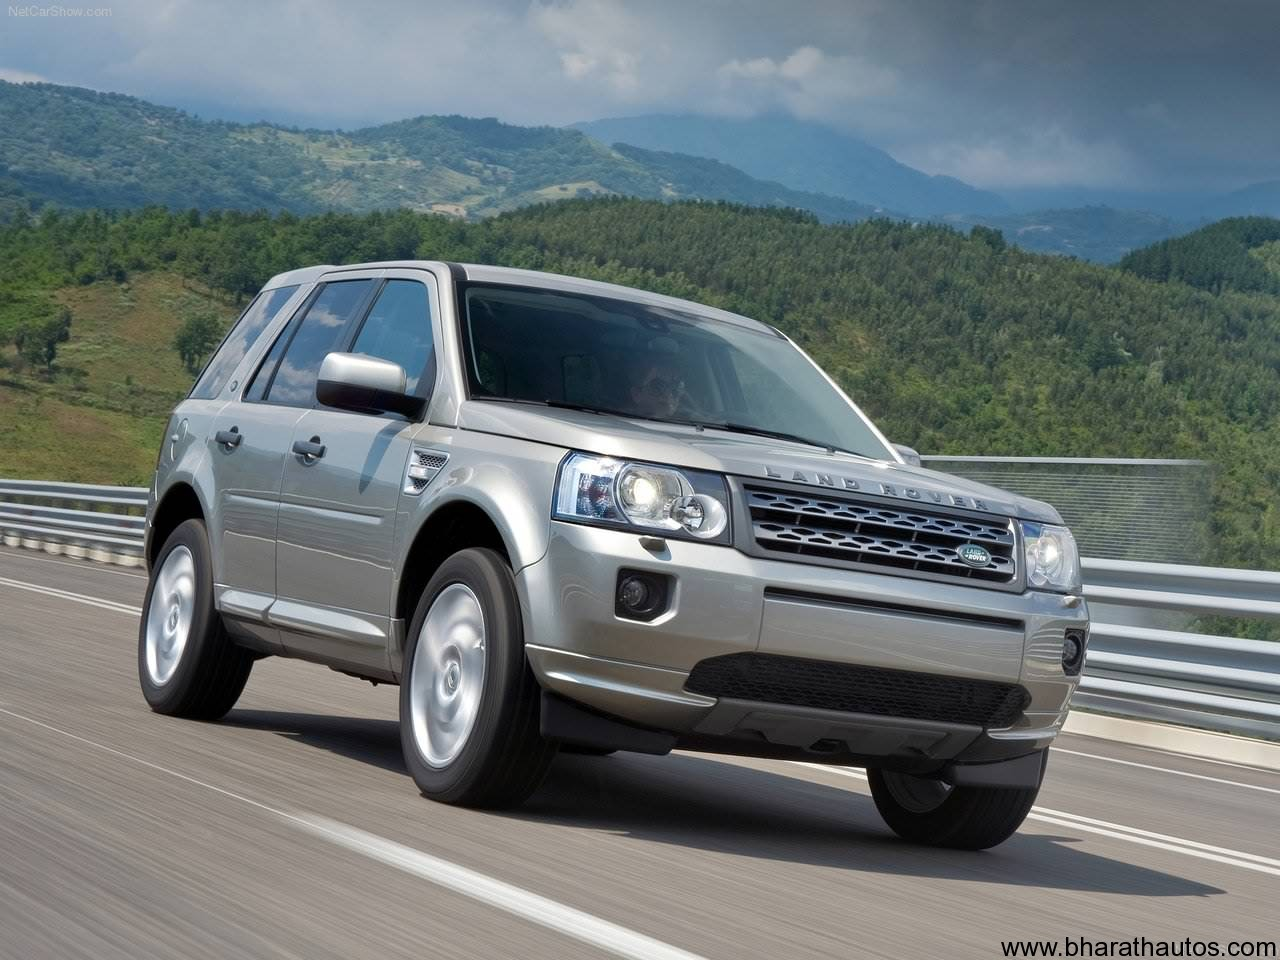 2011 Land Rover Freelander 2 Launched In India